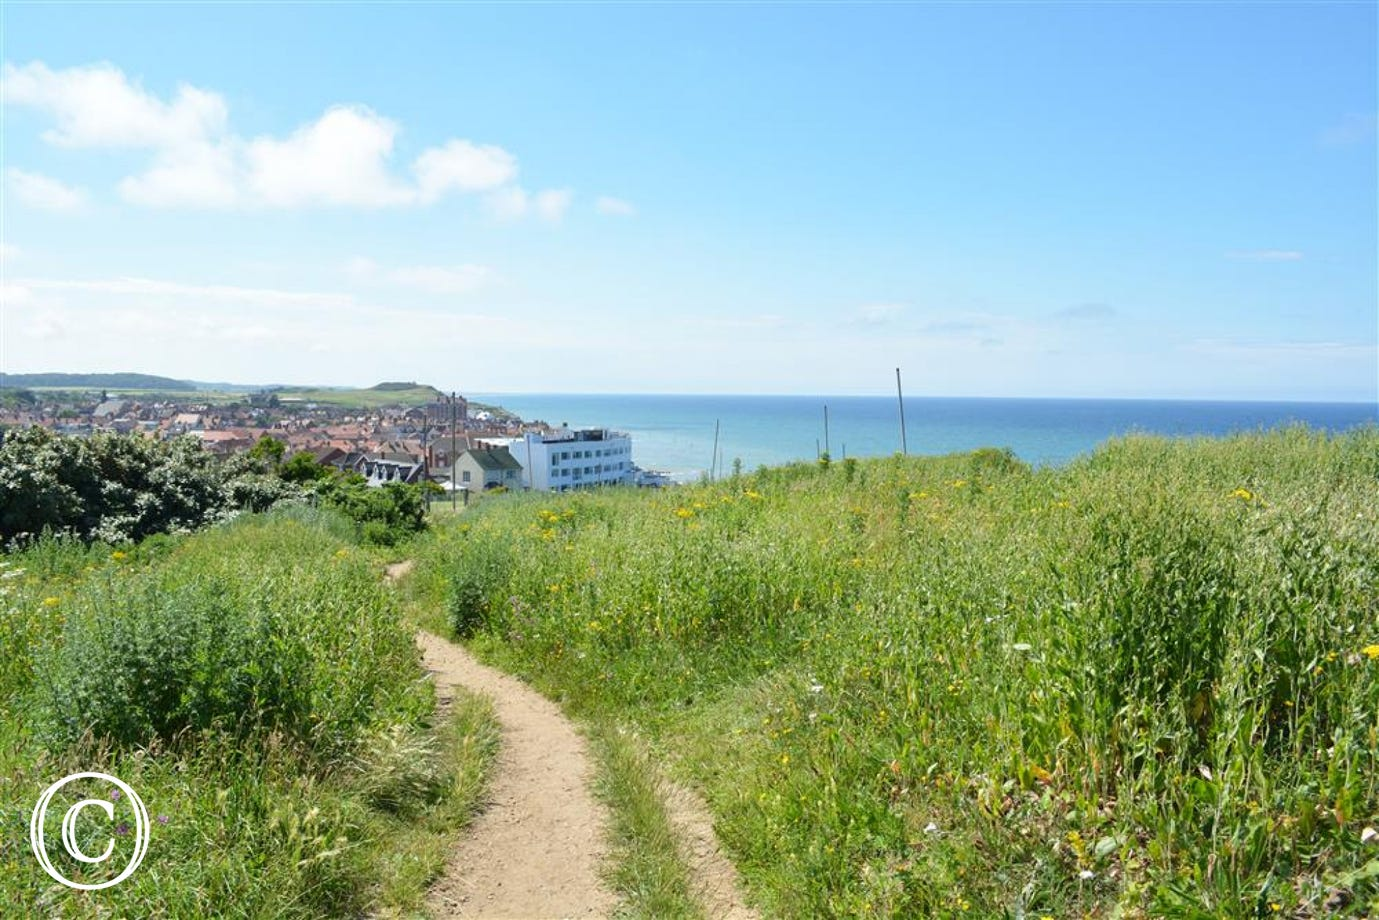 There is access to the coastal path from the rear garden